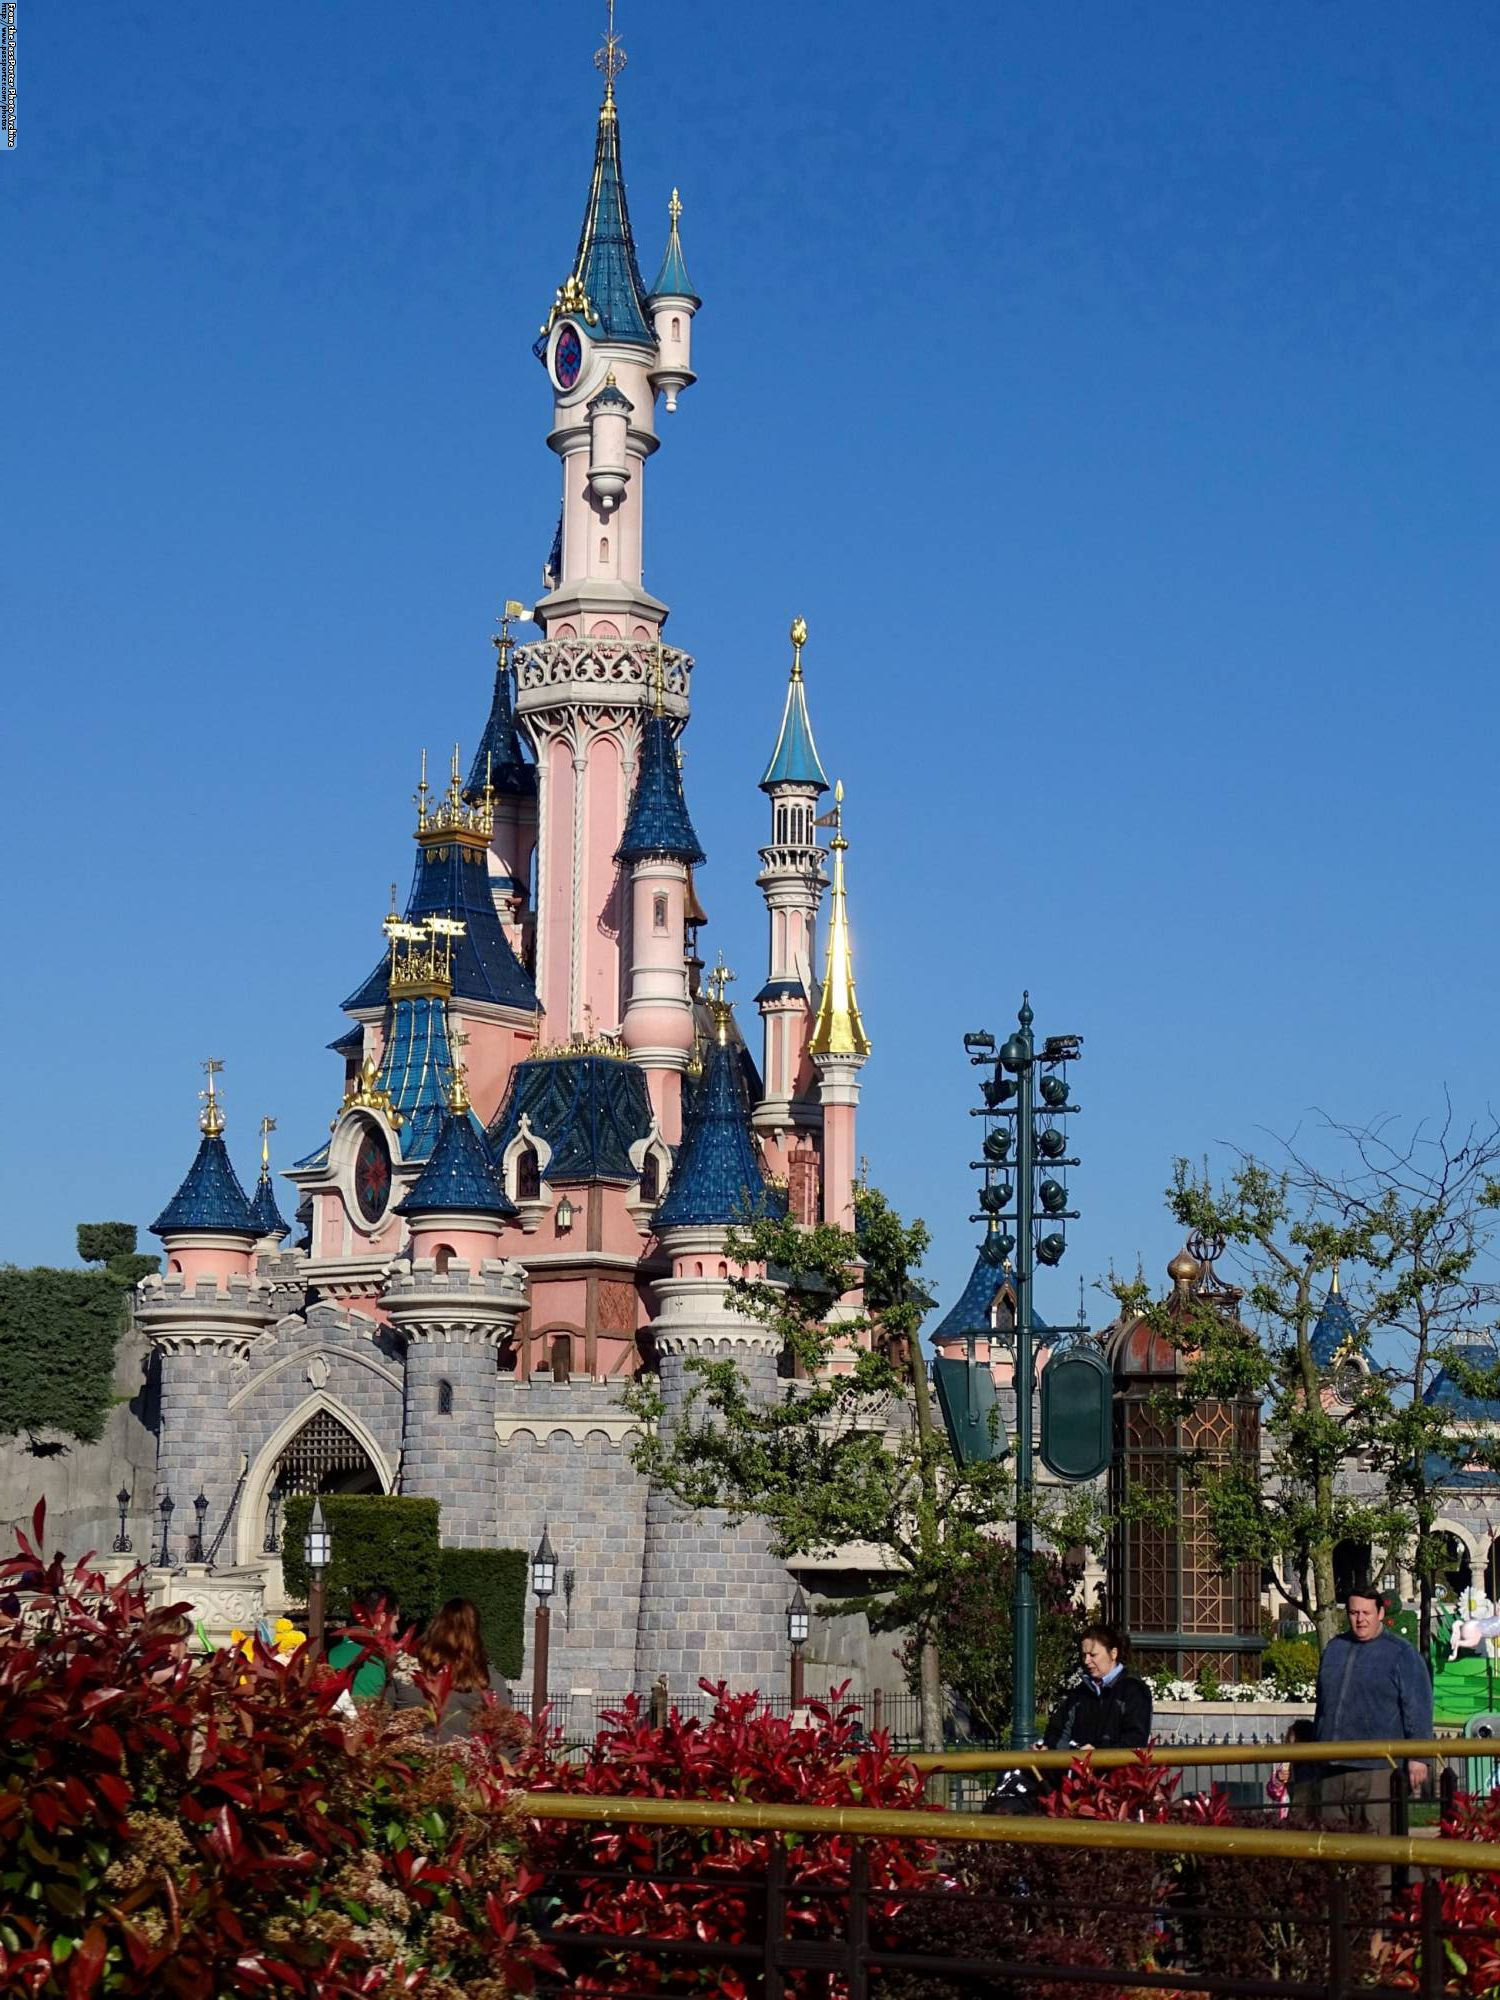 Learn more about Disneyland Paris before planning your trip |PassPorter.com